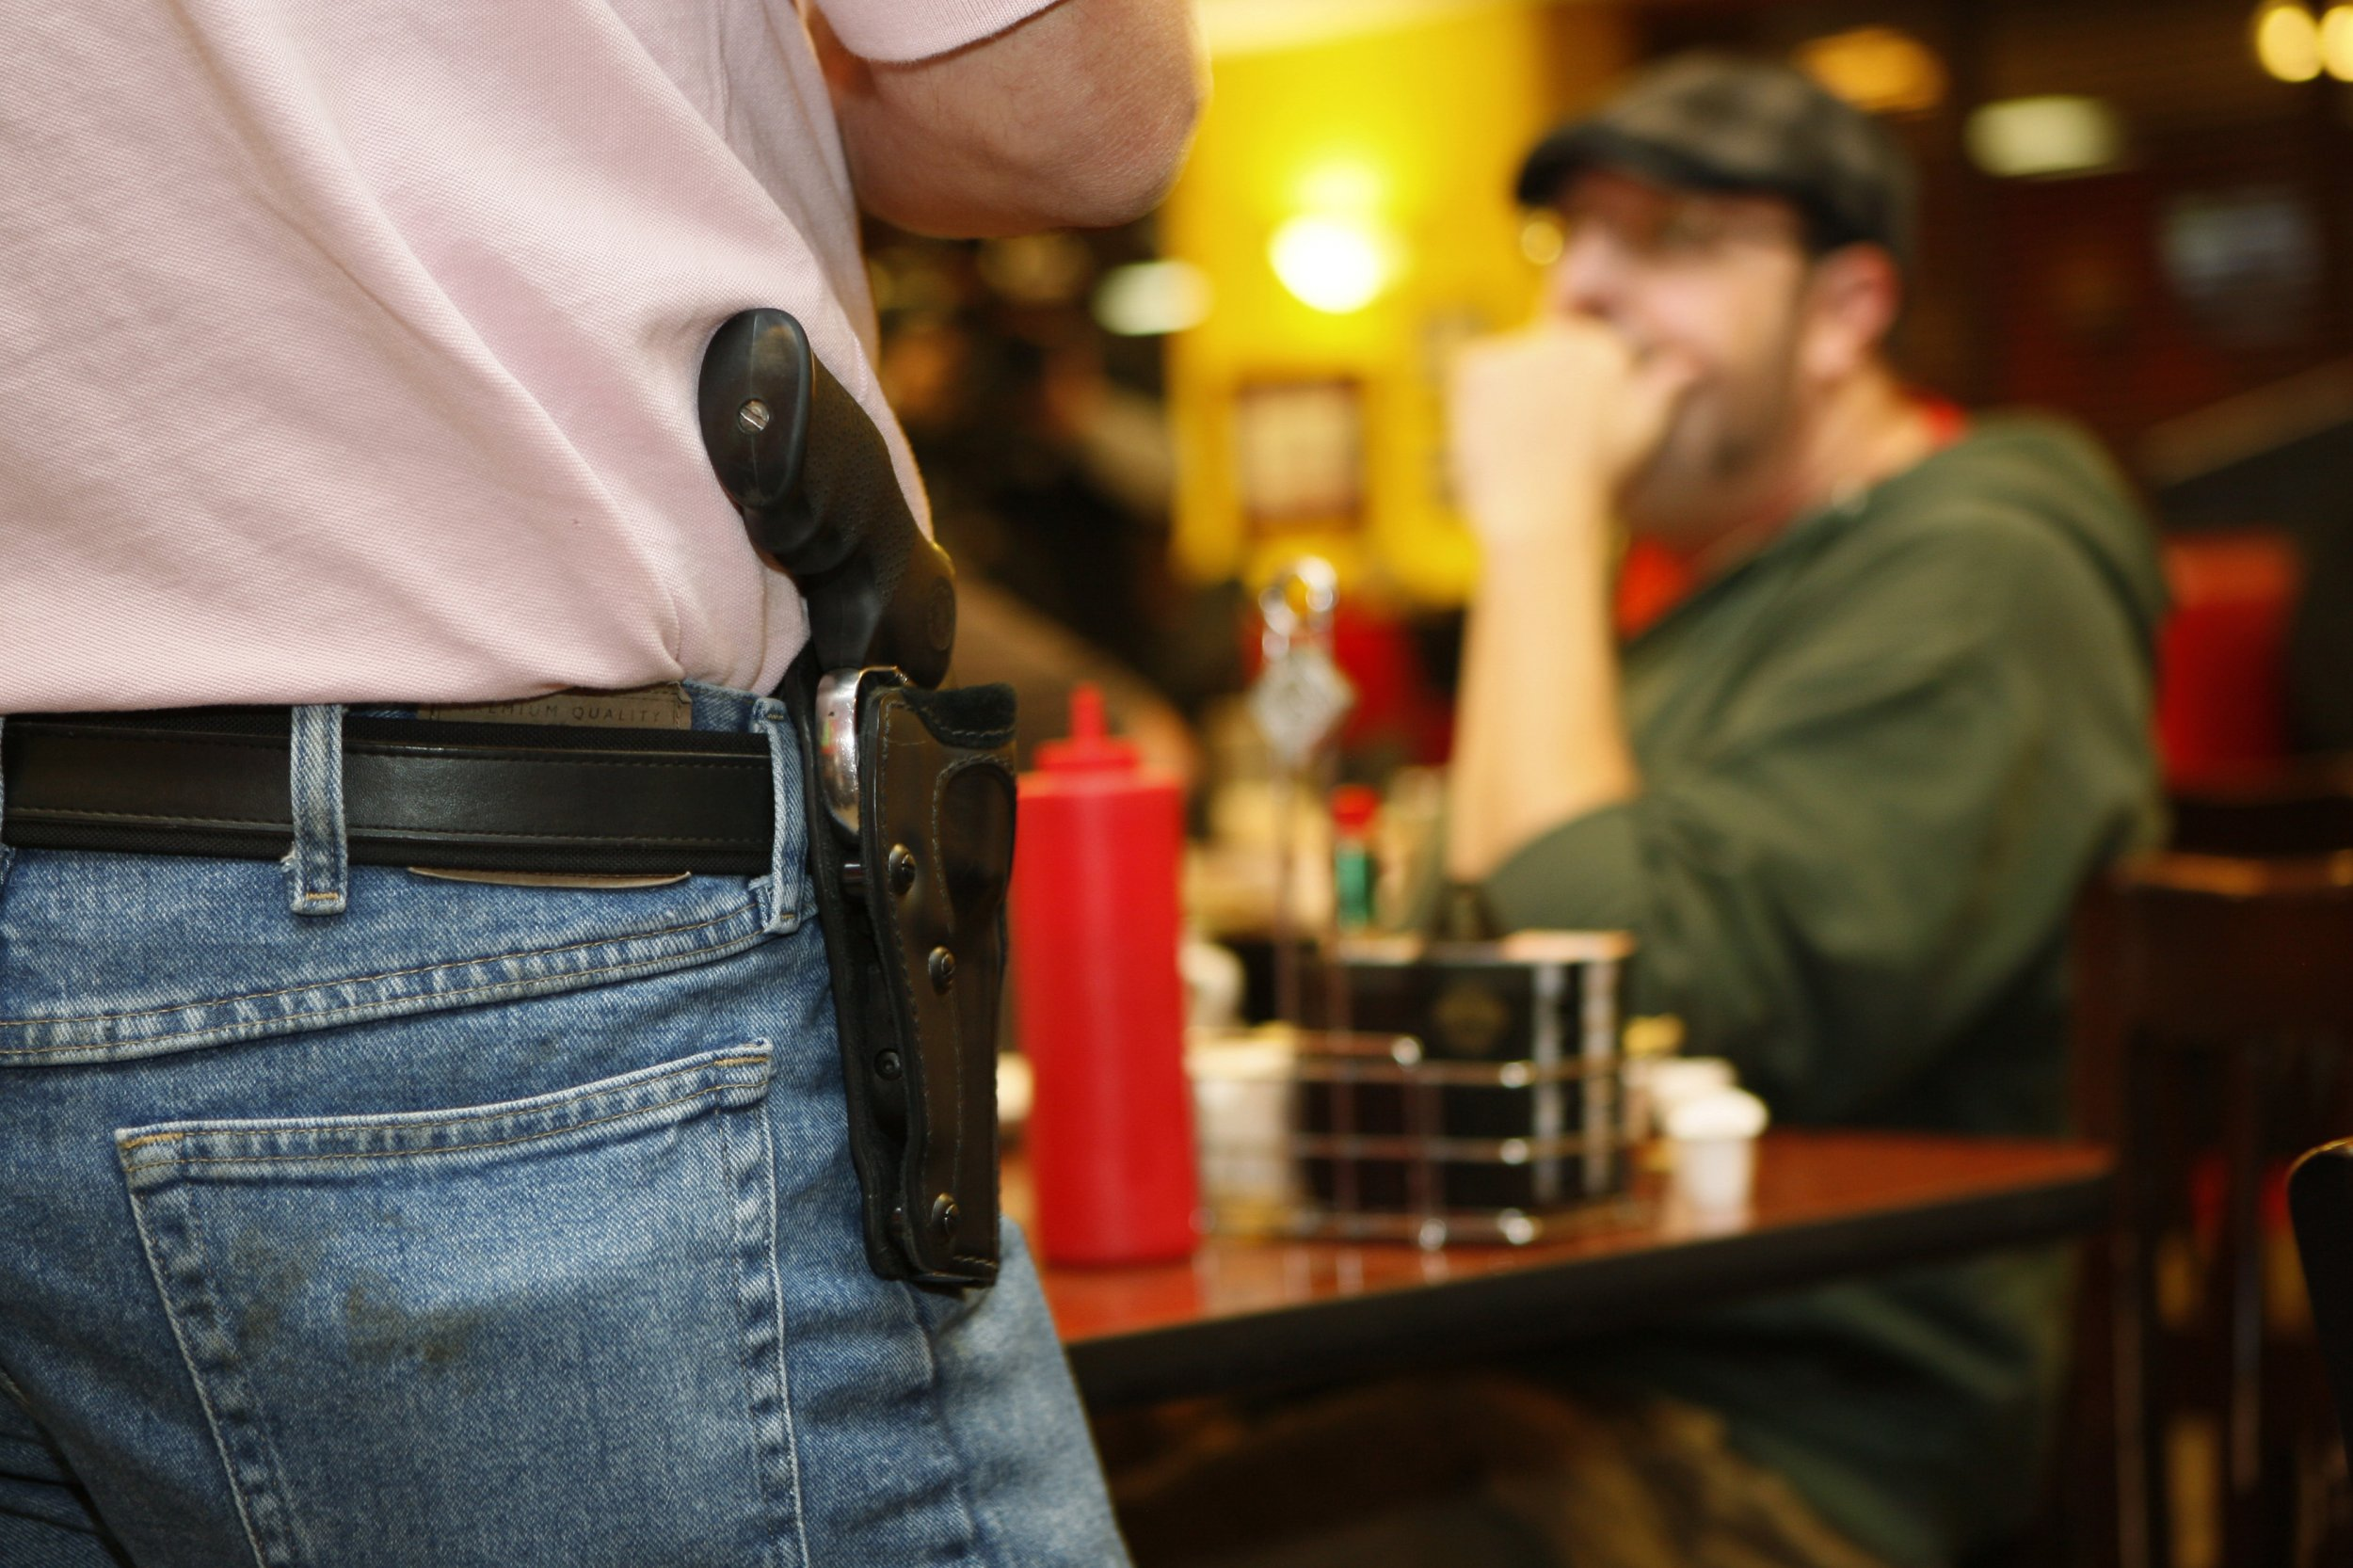 Lawmakers would be able to carry concealed guns everywhere, under Republican's bill